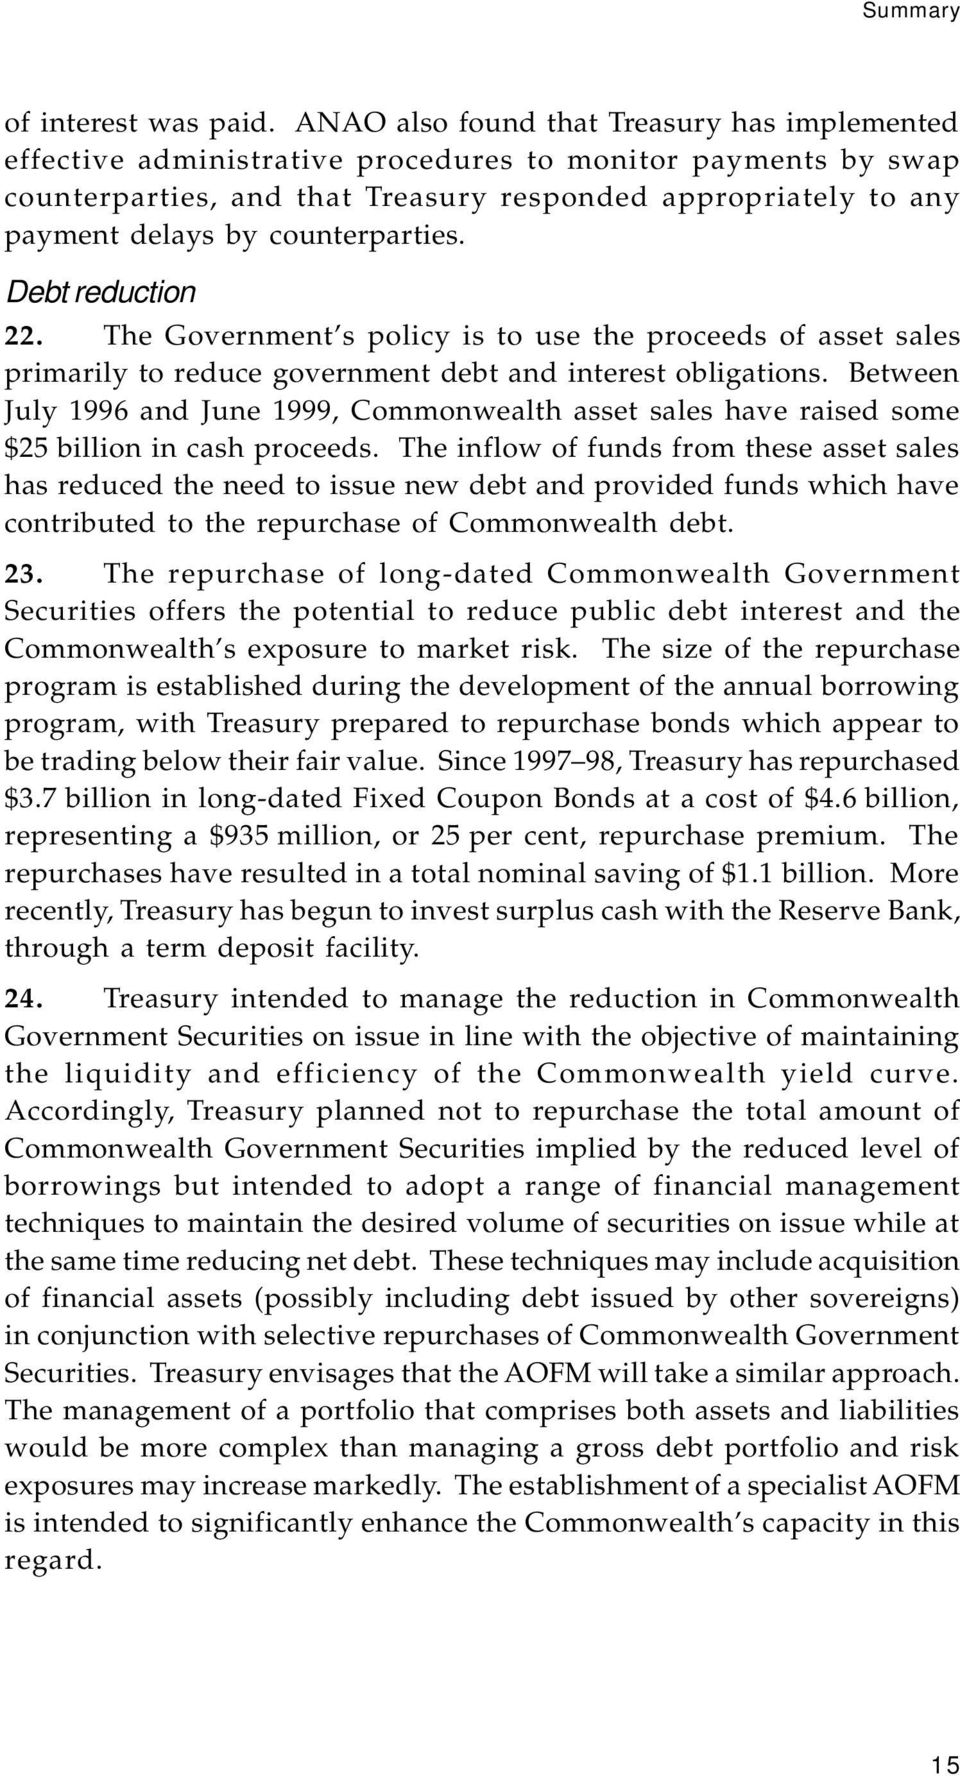 counterparties. Debt reduction 22. The Government s policy is to use the proceeds of asset sales primarily to reduce government debt and interest obligations.